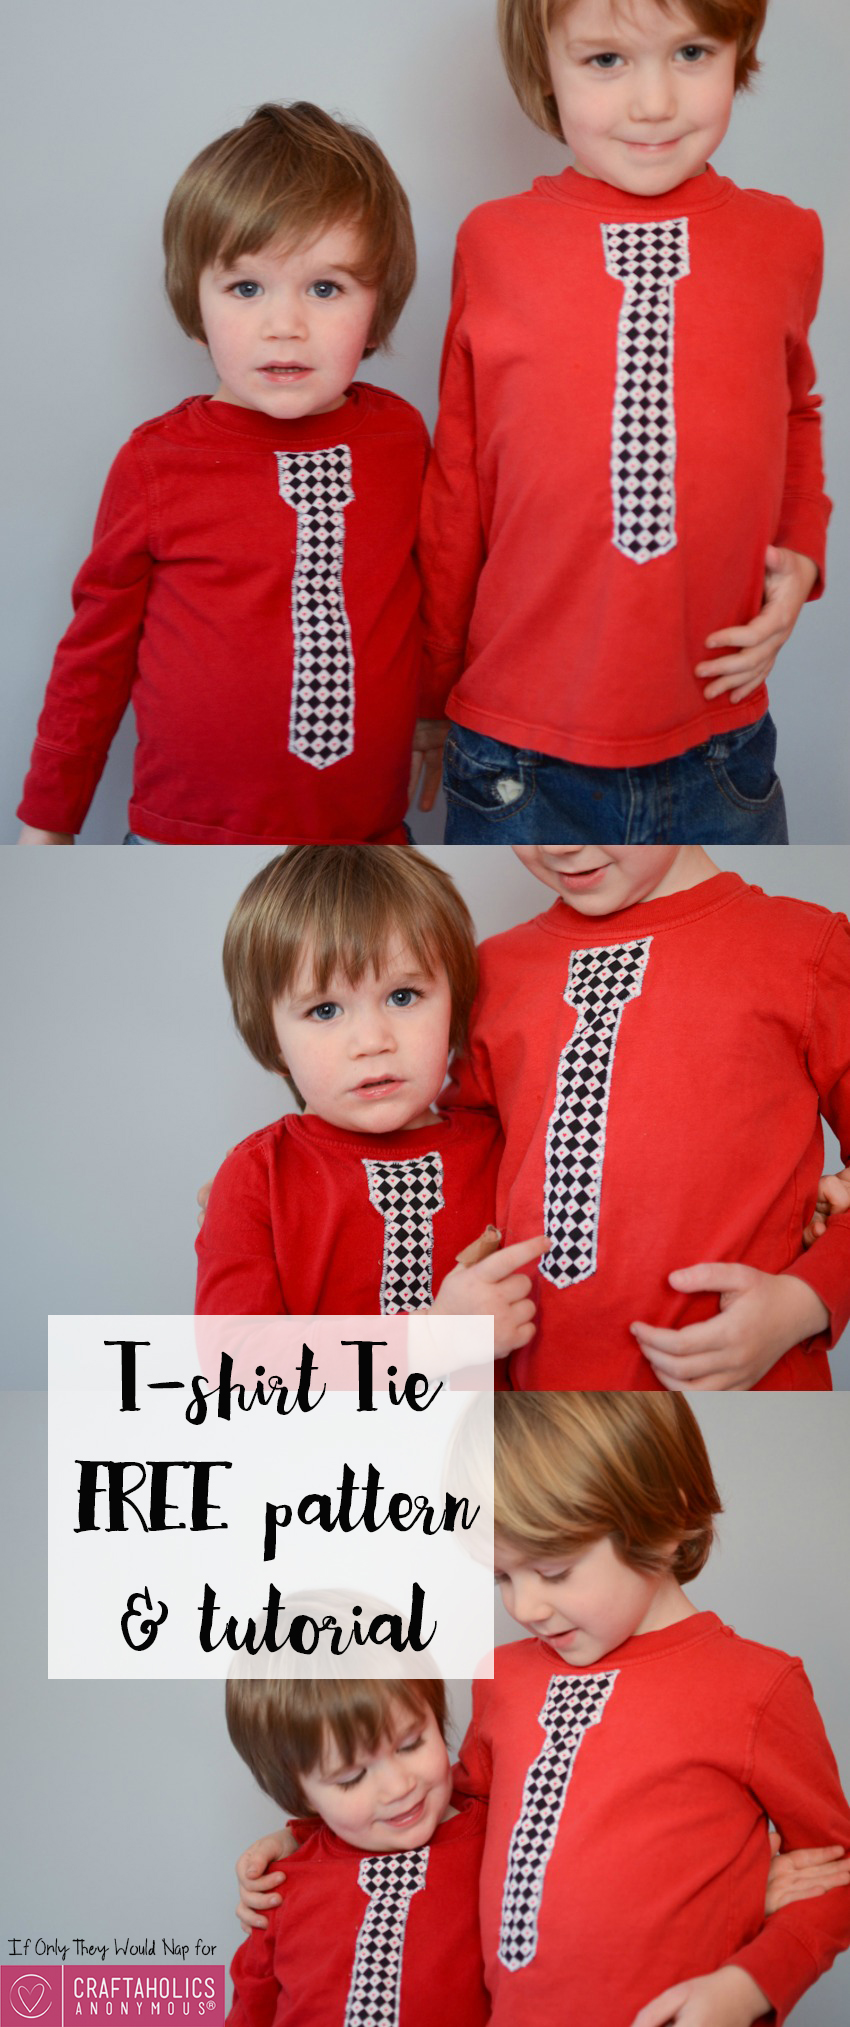 Tshirt Tie FREE pattern and tutorial